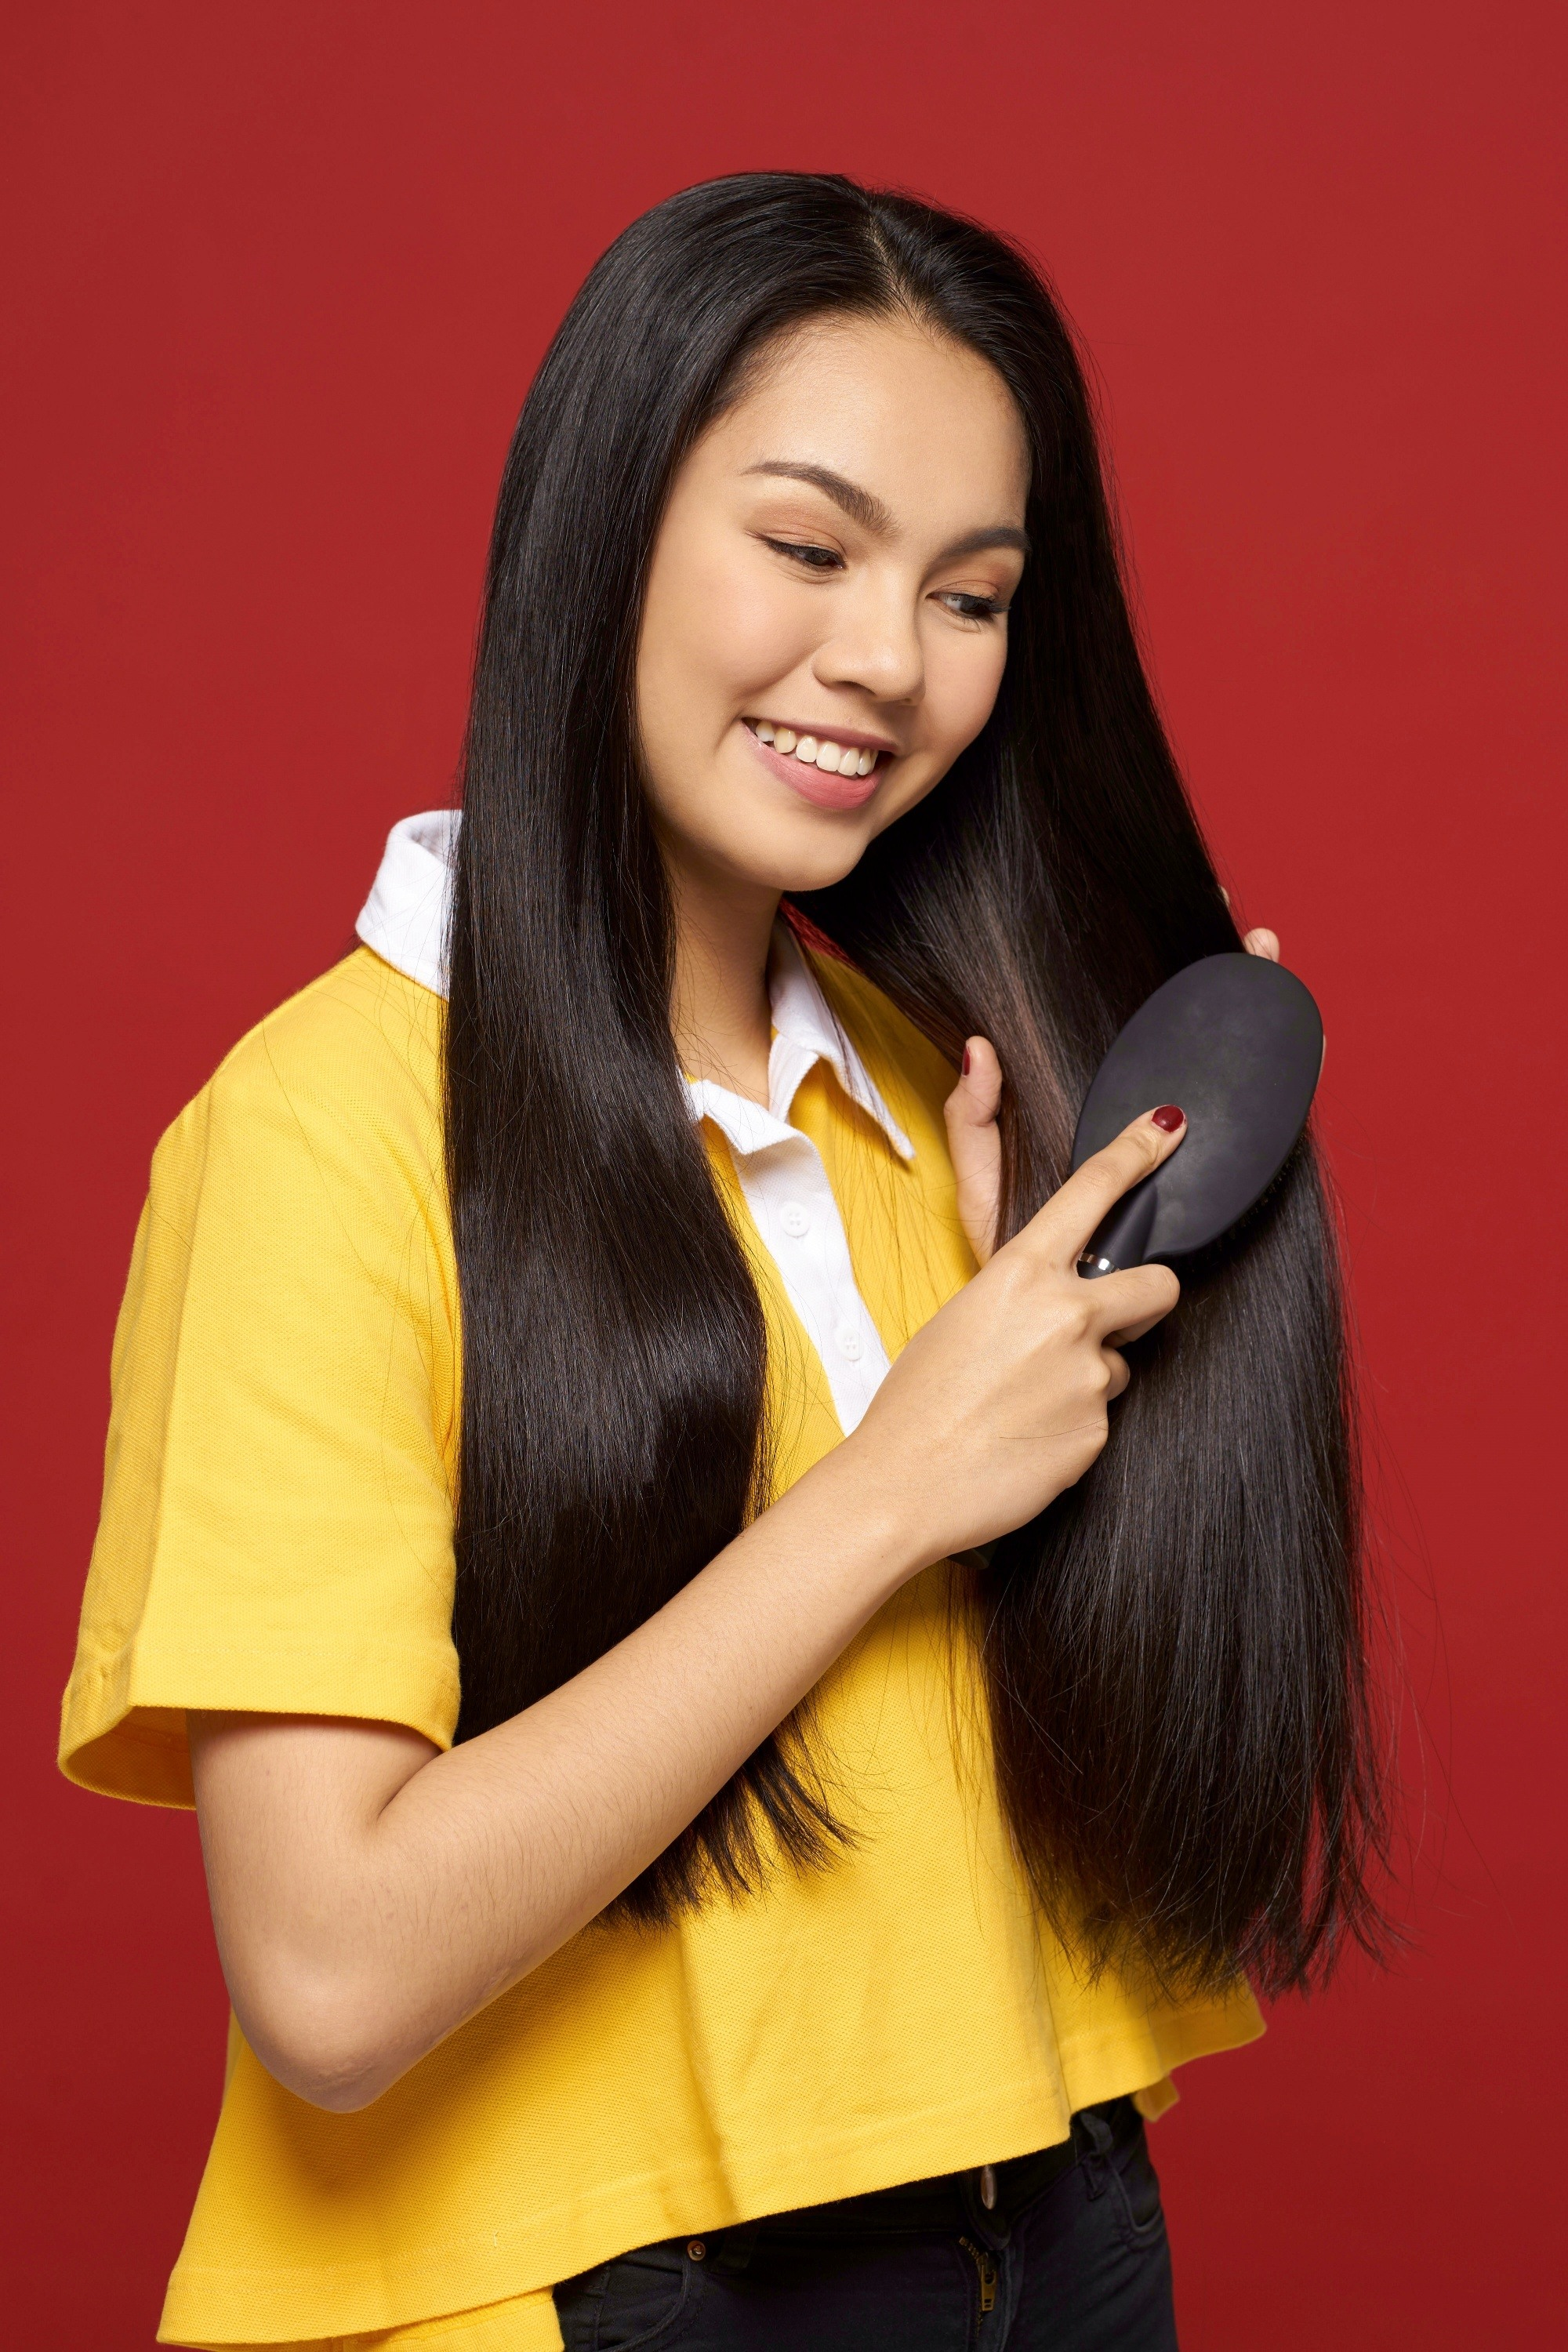 Brush your hair the right way: Asian woman brushing her long black hair